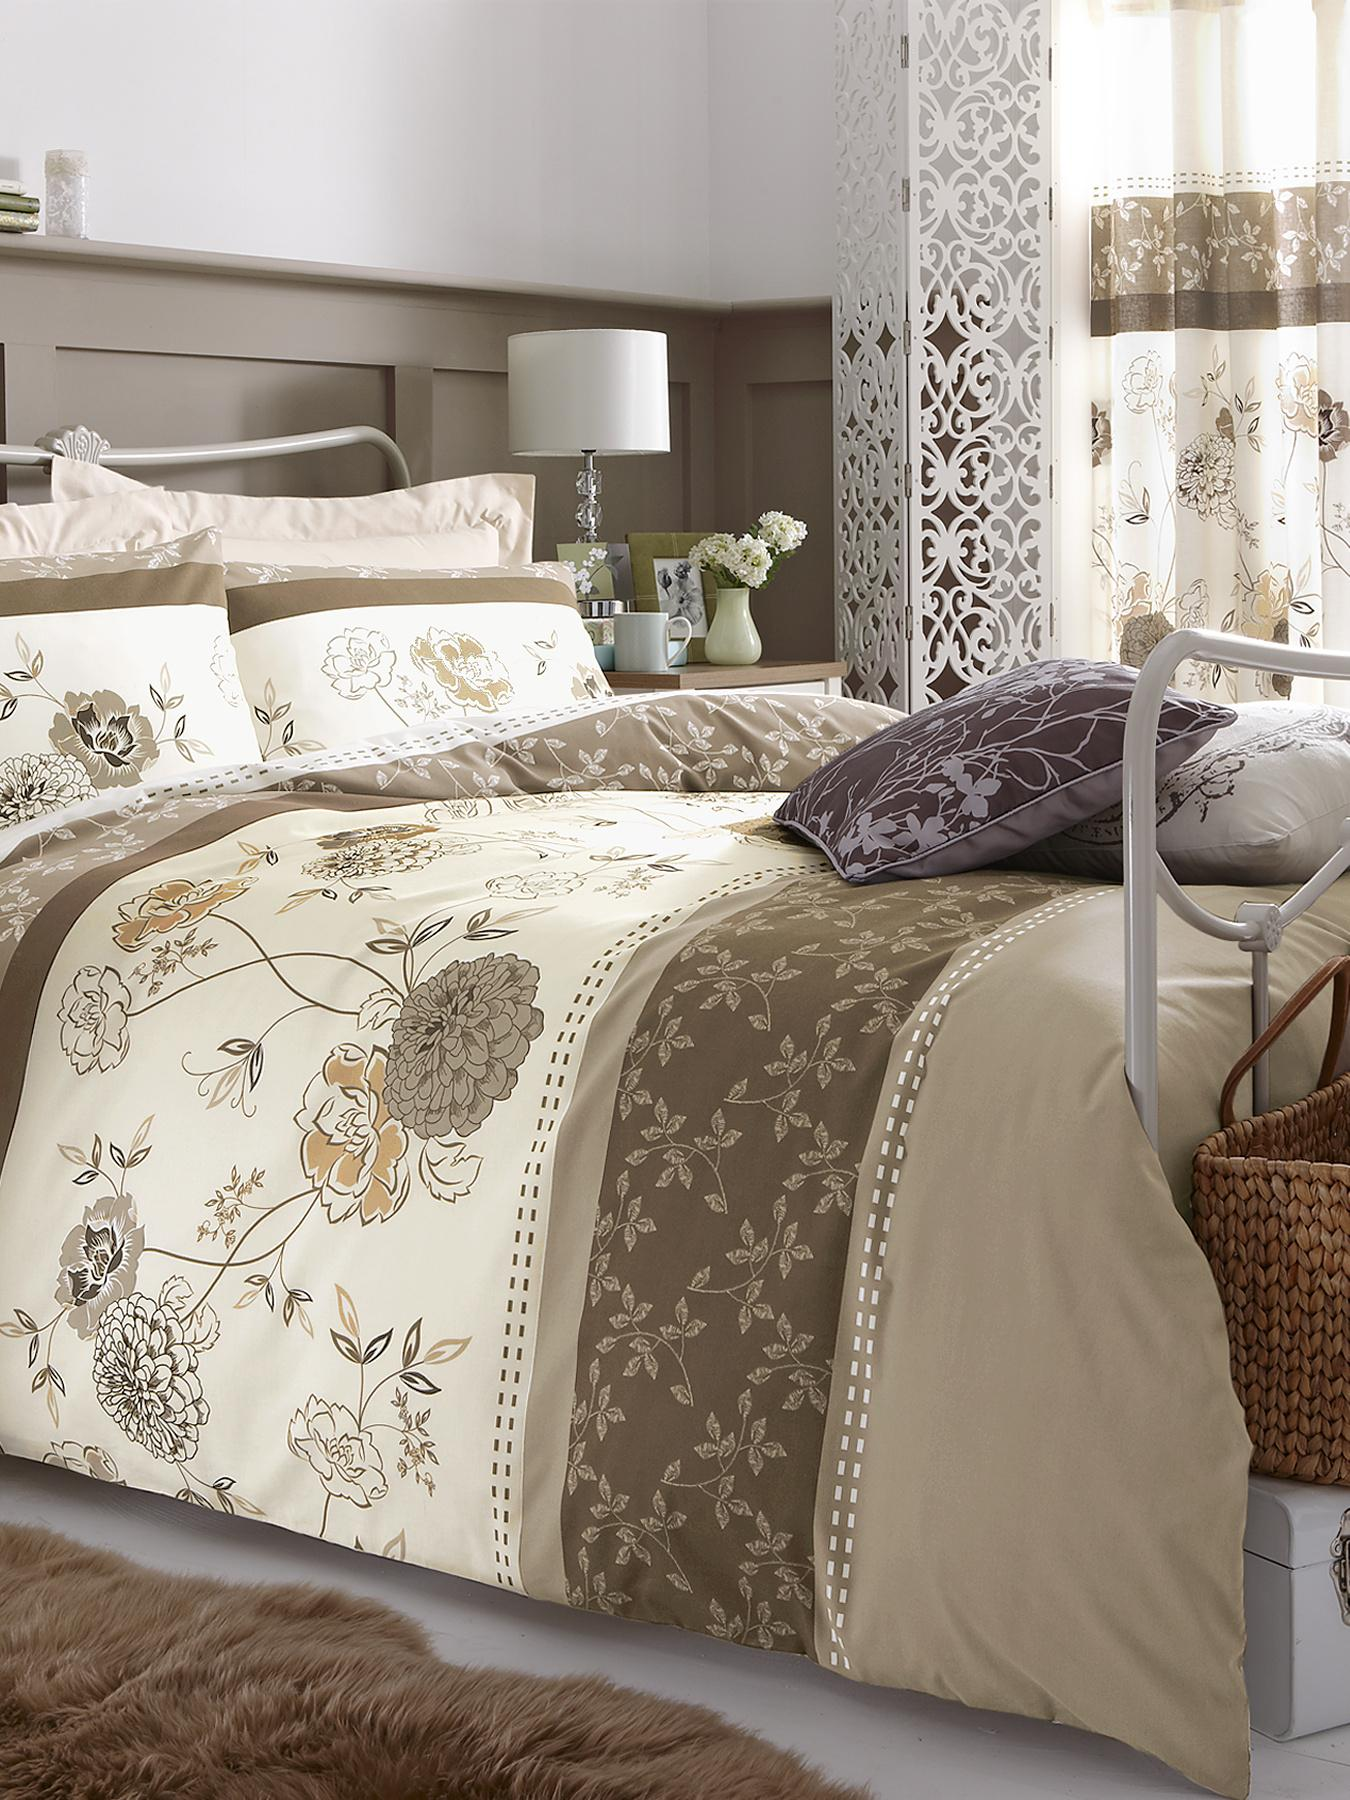 Fern Bedding Range - Natural